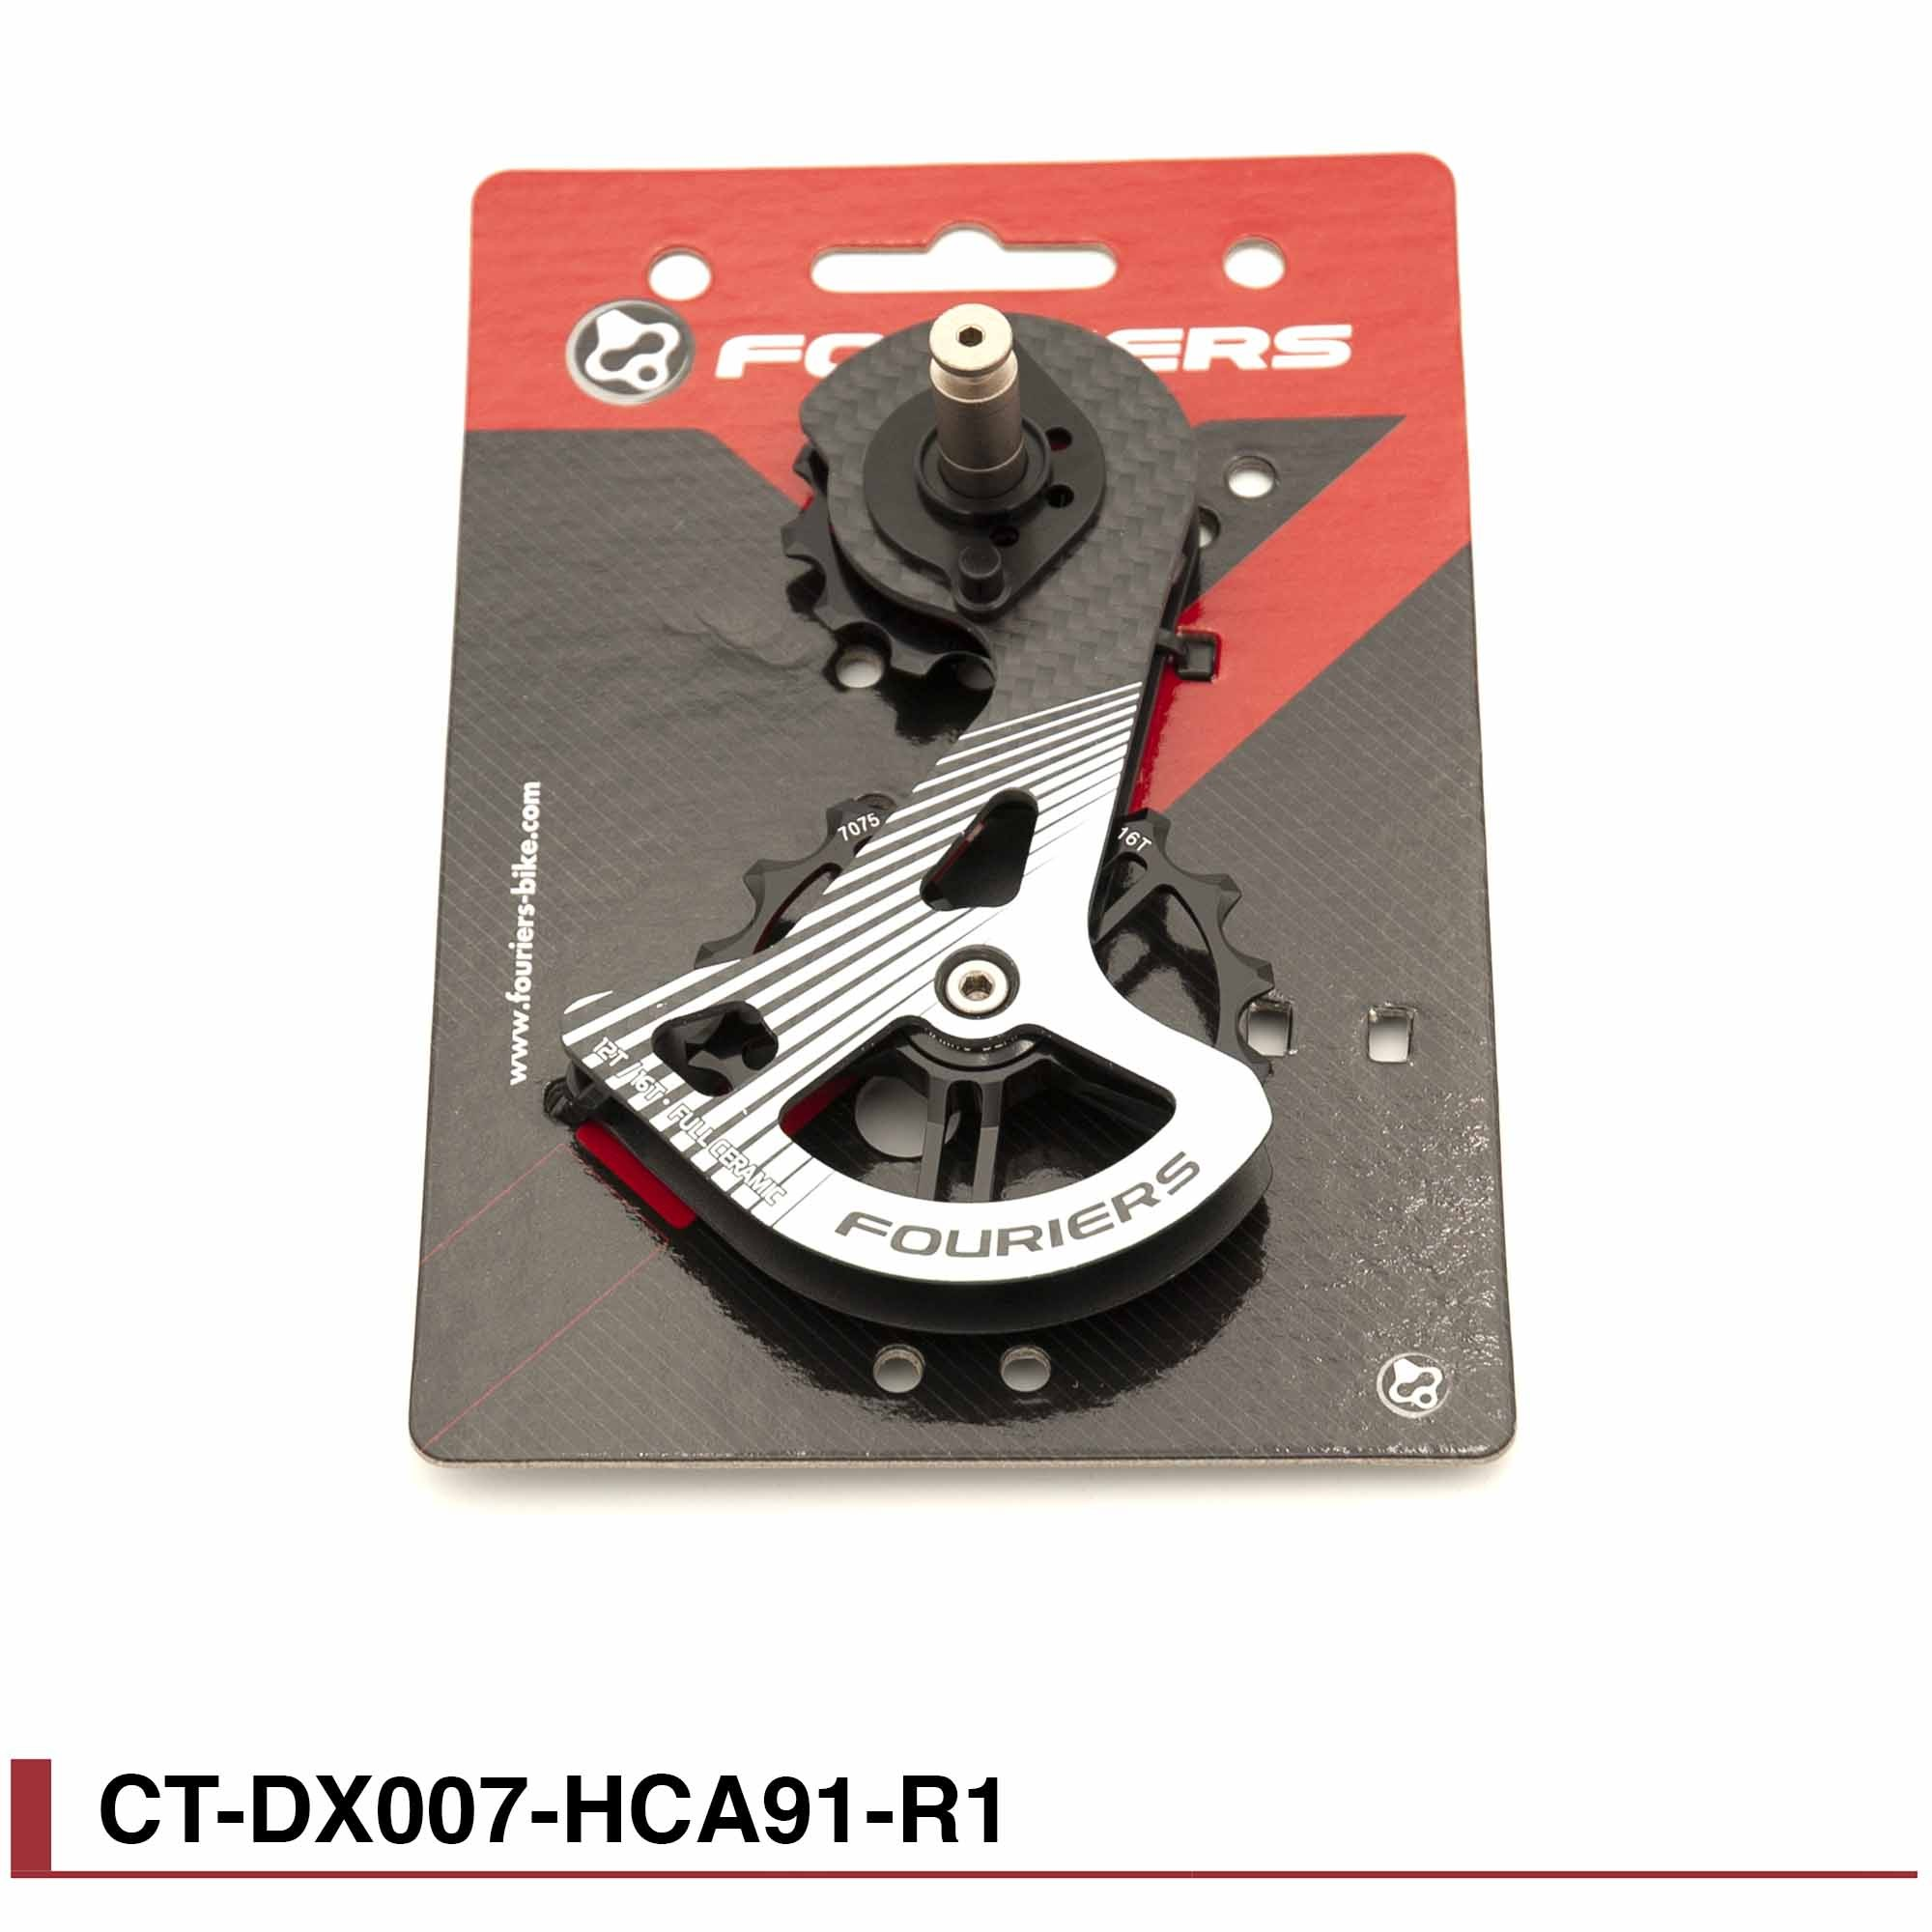 Chape grands galets Full ceramic carbone pour Shimano dura ace 9100/9150 Fouriers